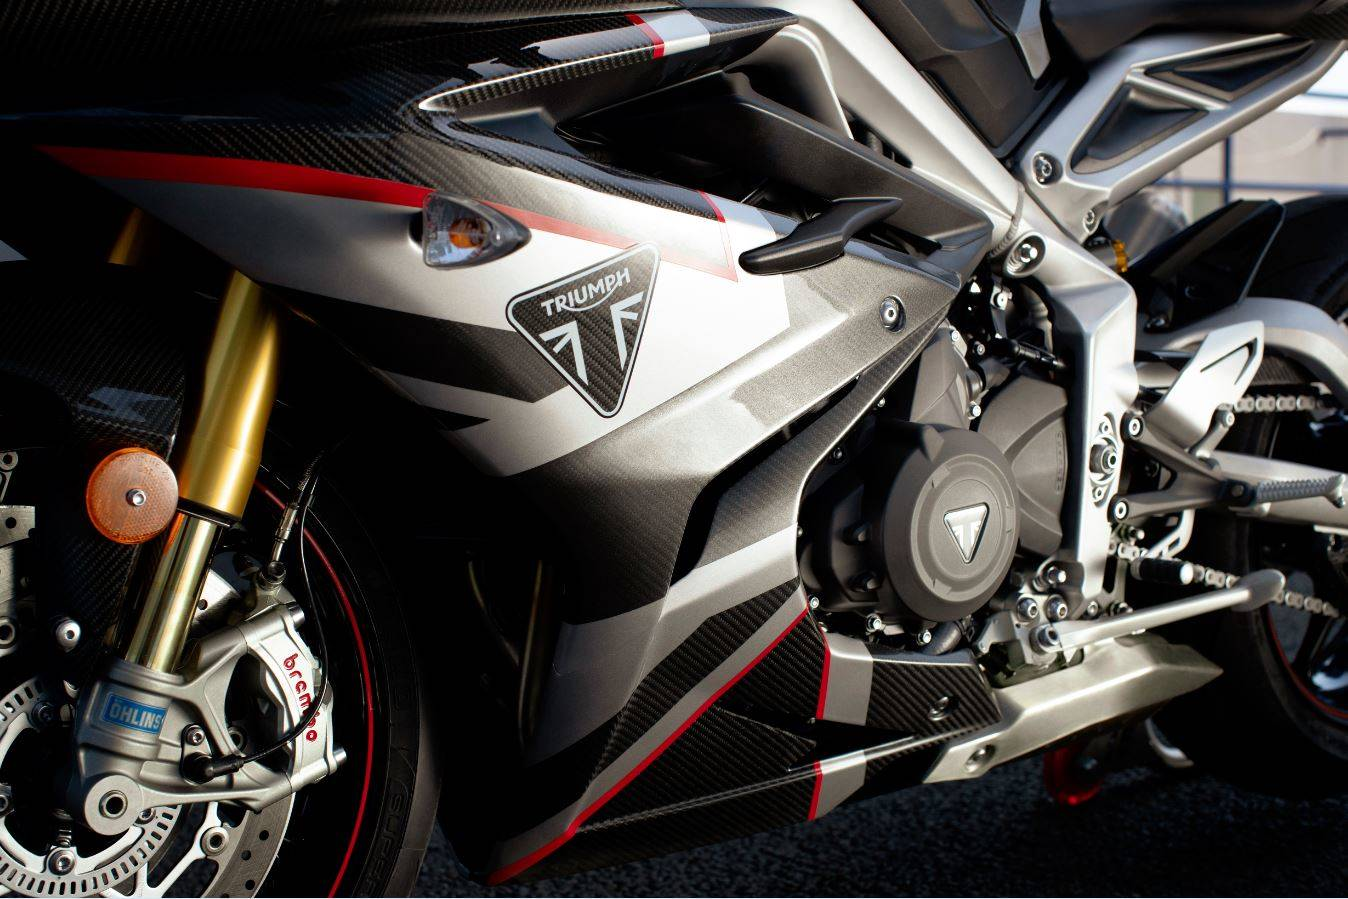 2020 Triumph Daytona Moto2TM 765 Limited Edition in Mahwah, New Jersey - Photo 2